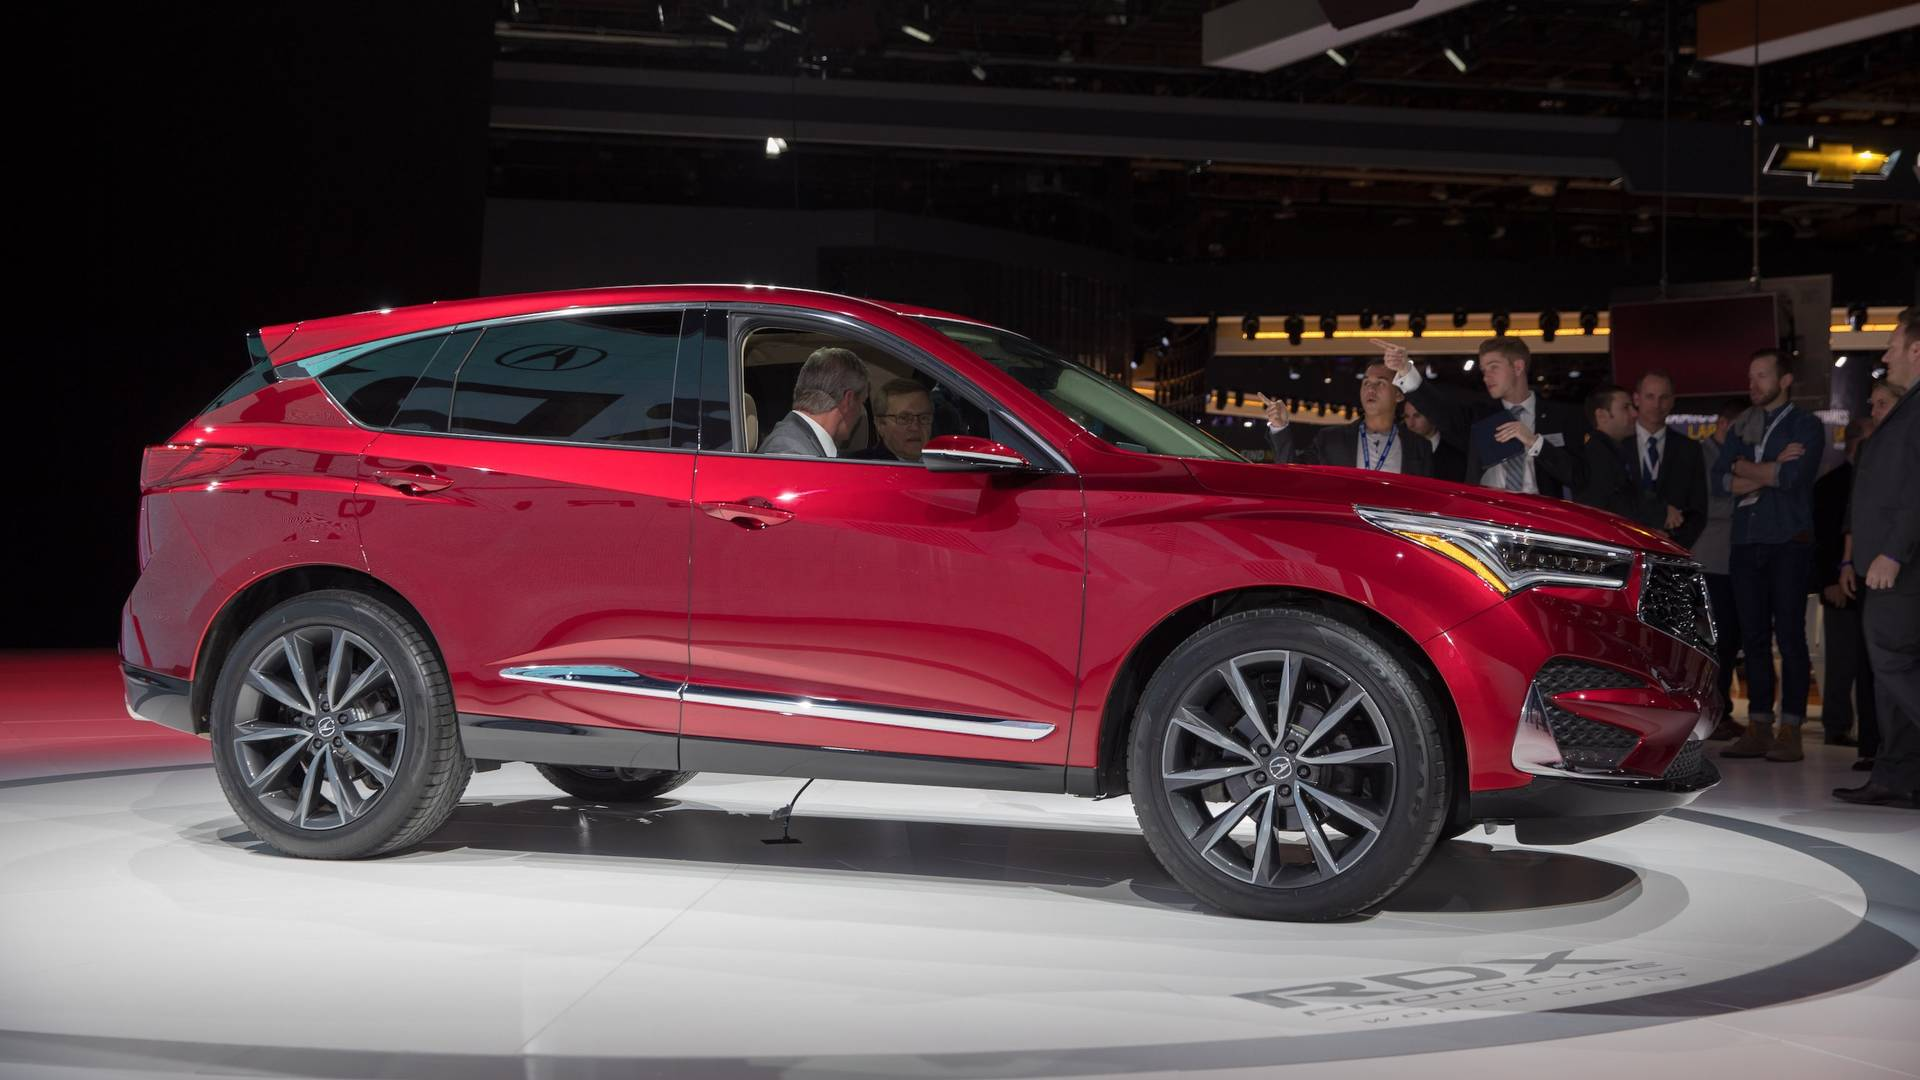 2019 Acura Rdx Prototype Packs More Power More Luxury